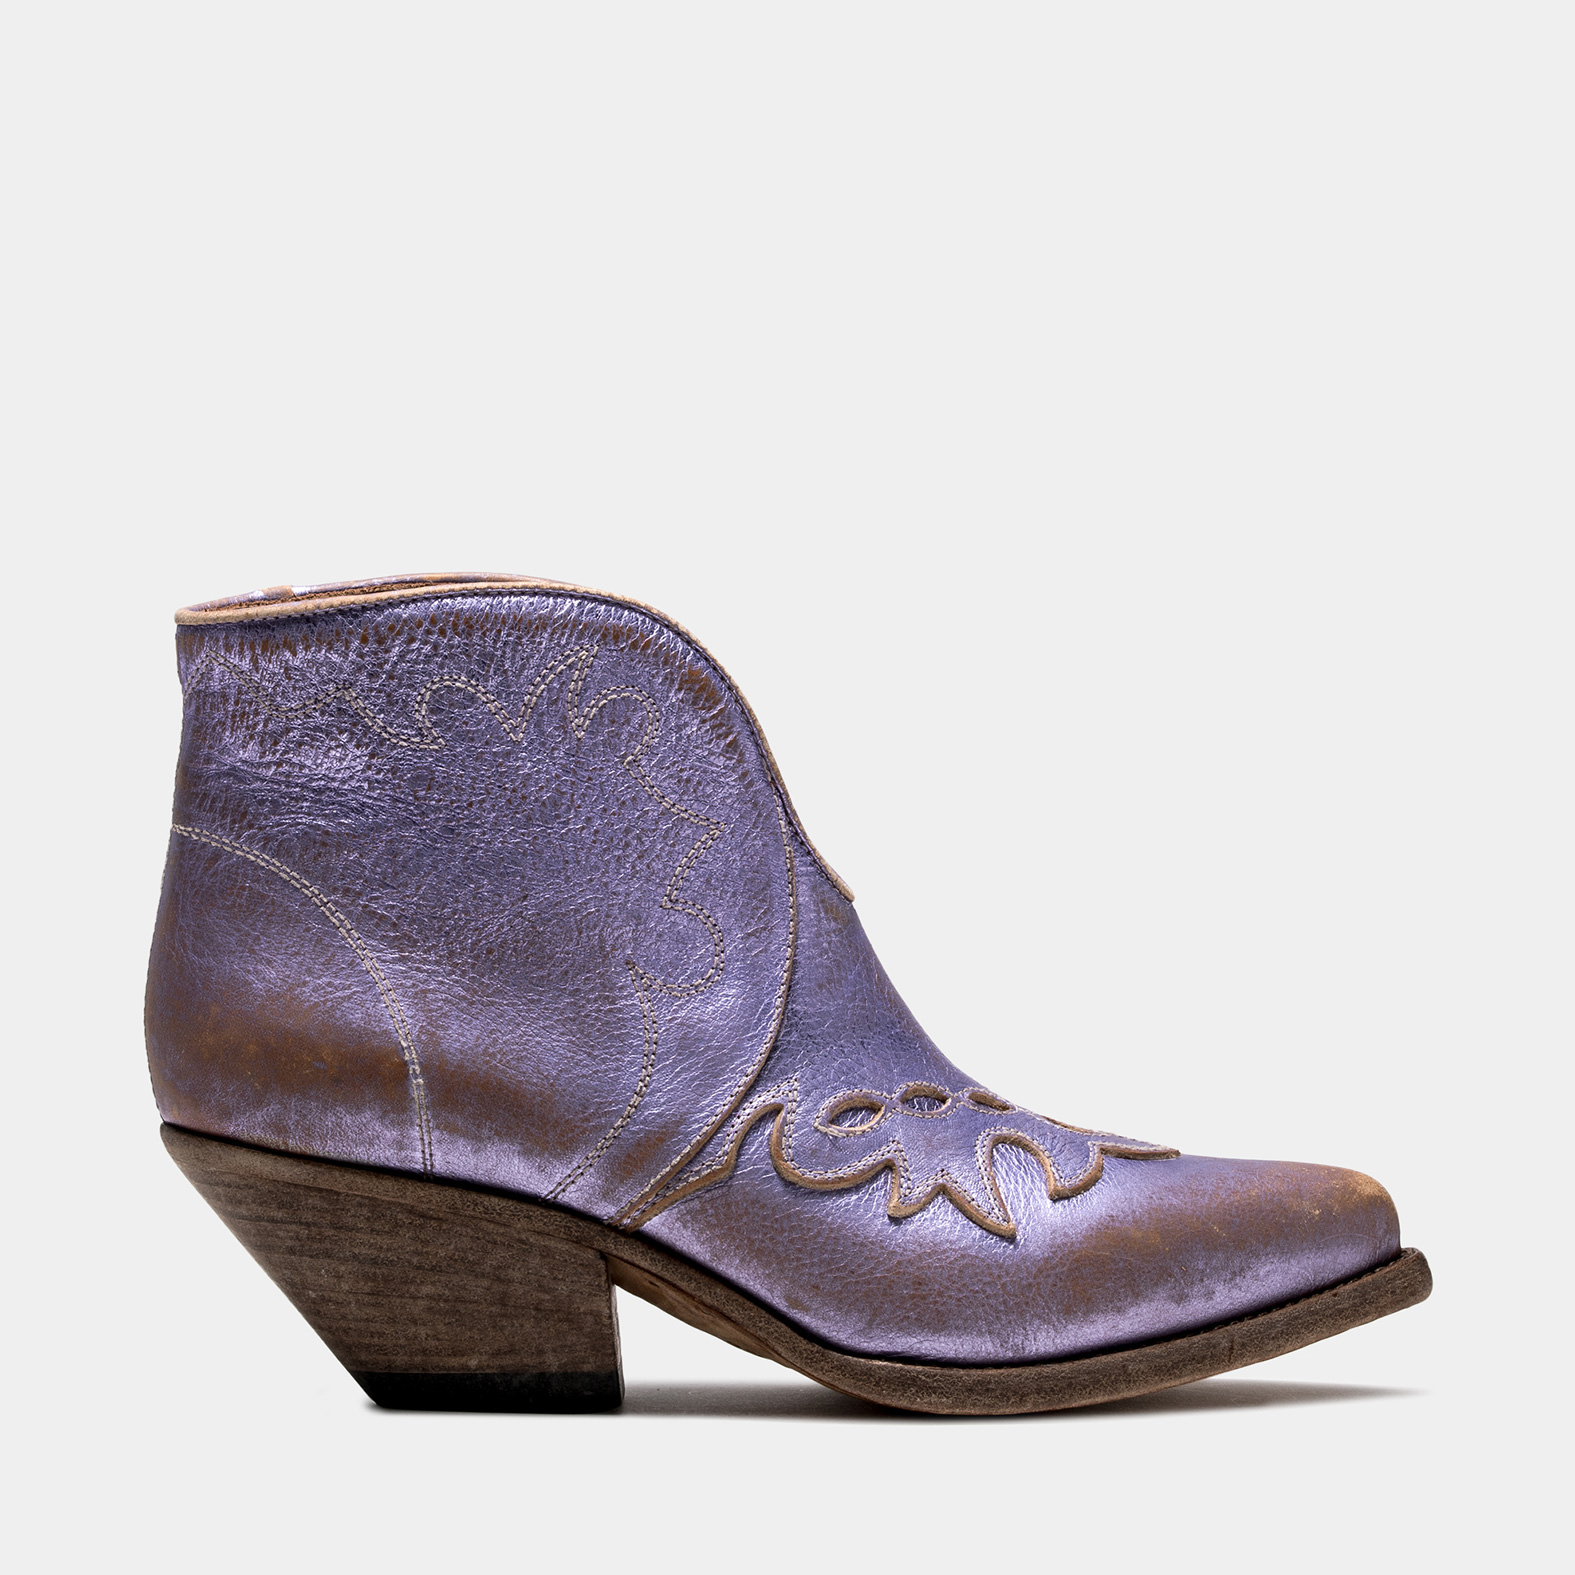 BUTTERO: ELISE LOW TOP DURANGO BOOTS IN PINK LEATHER